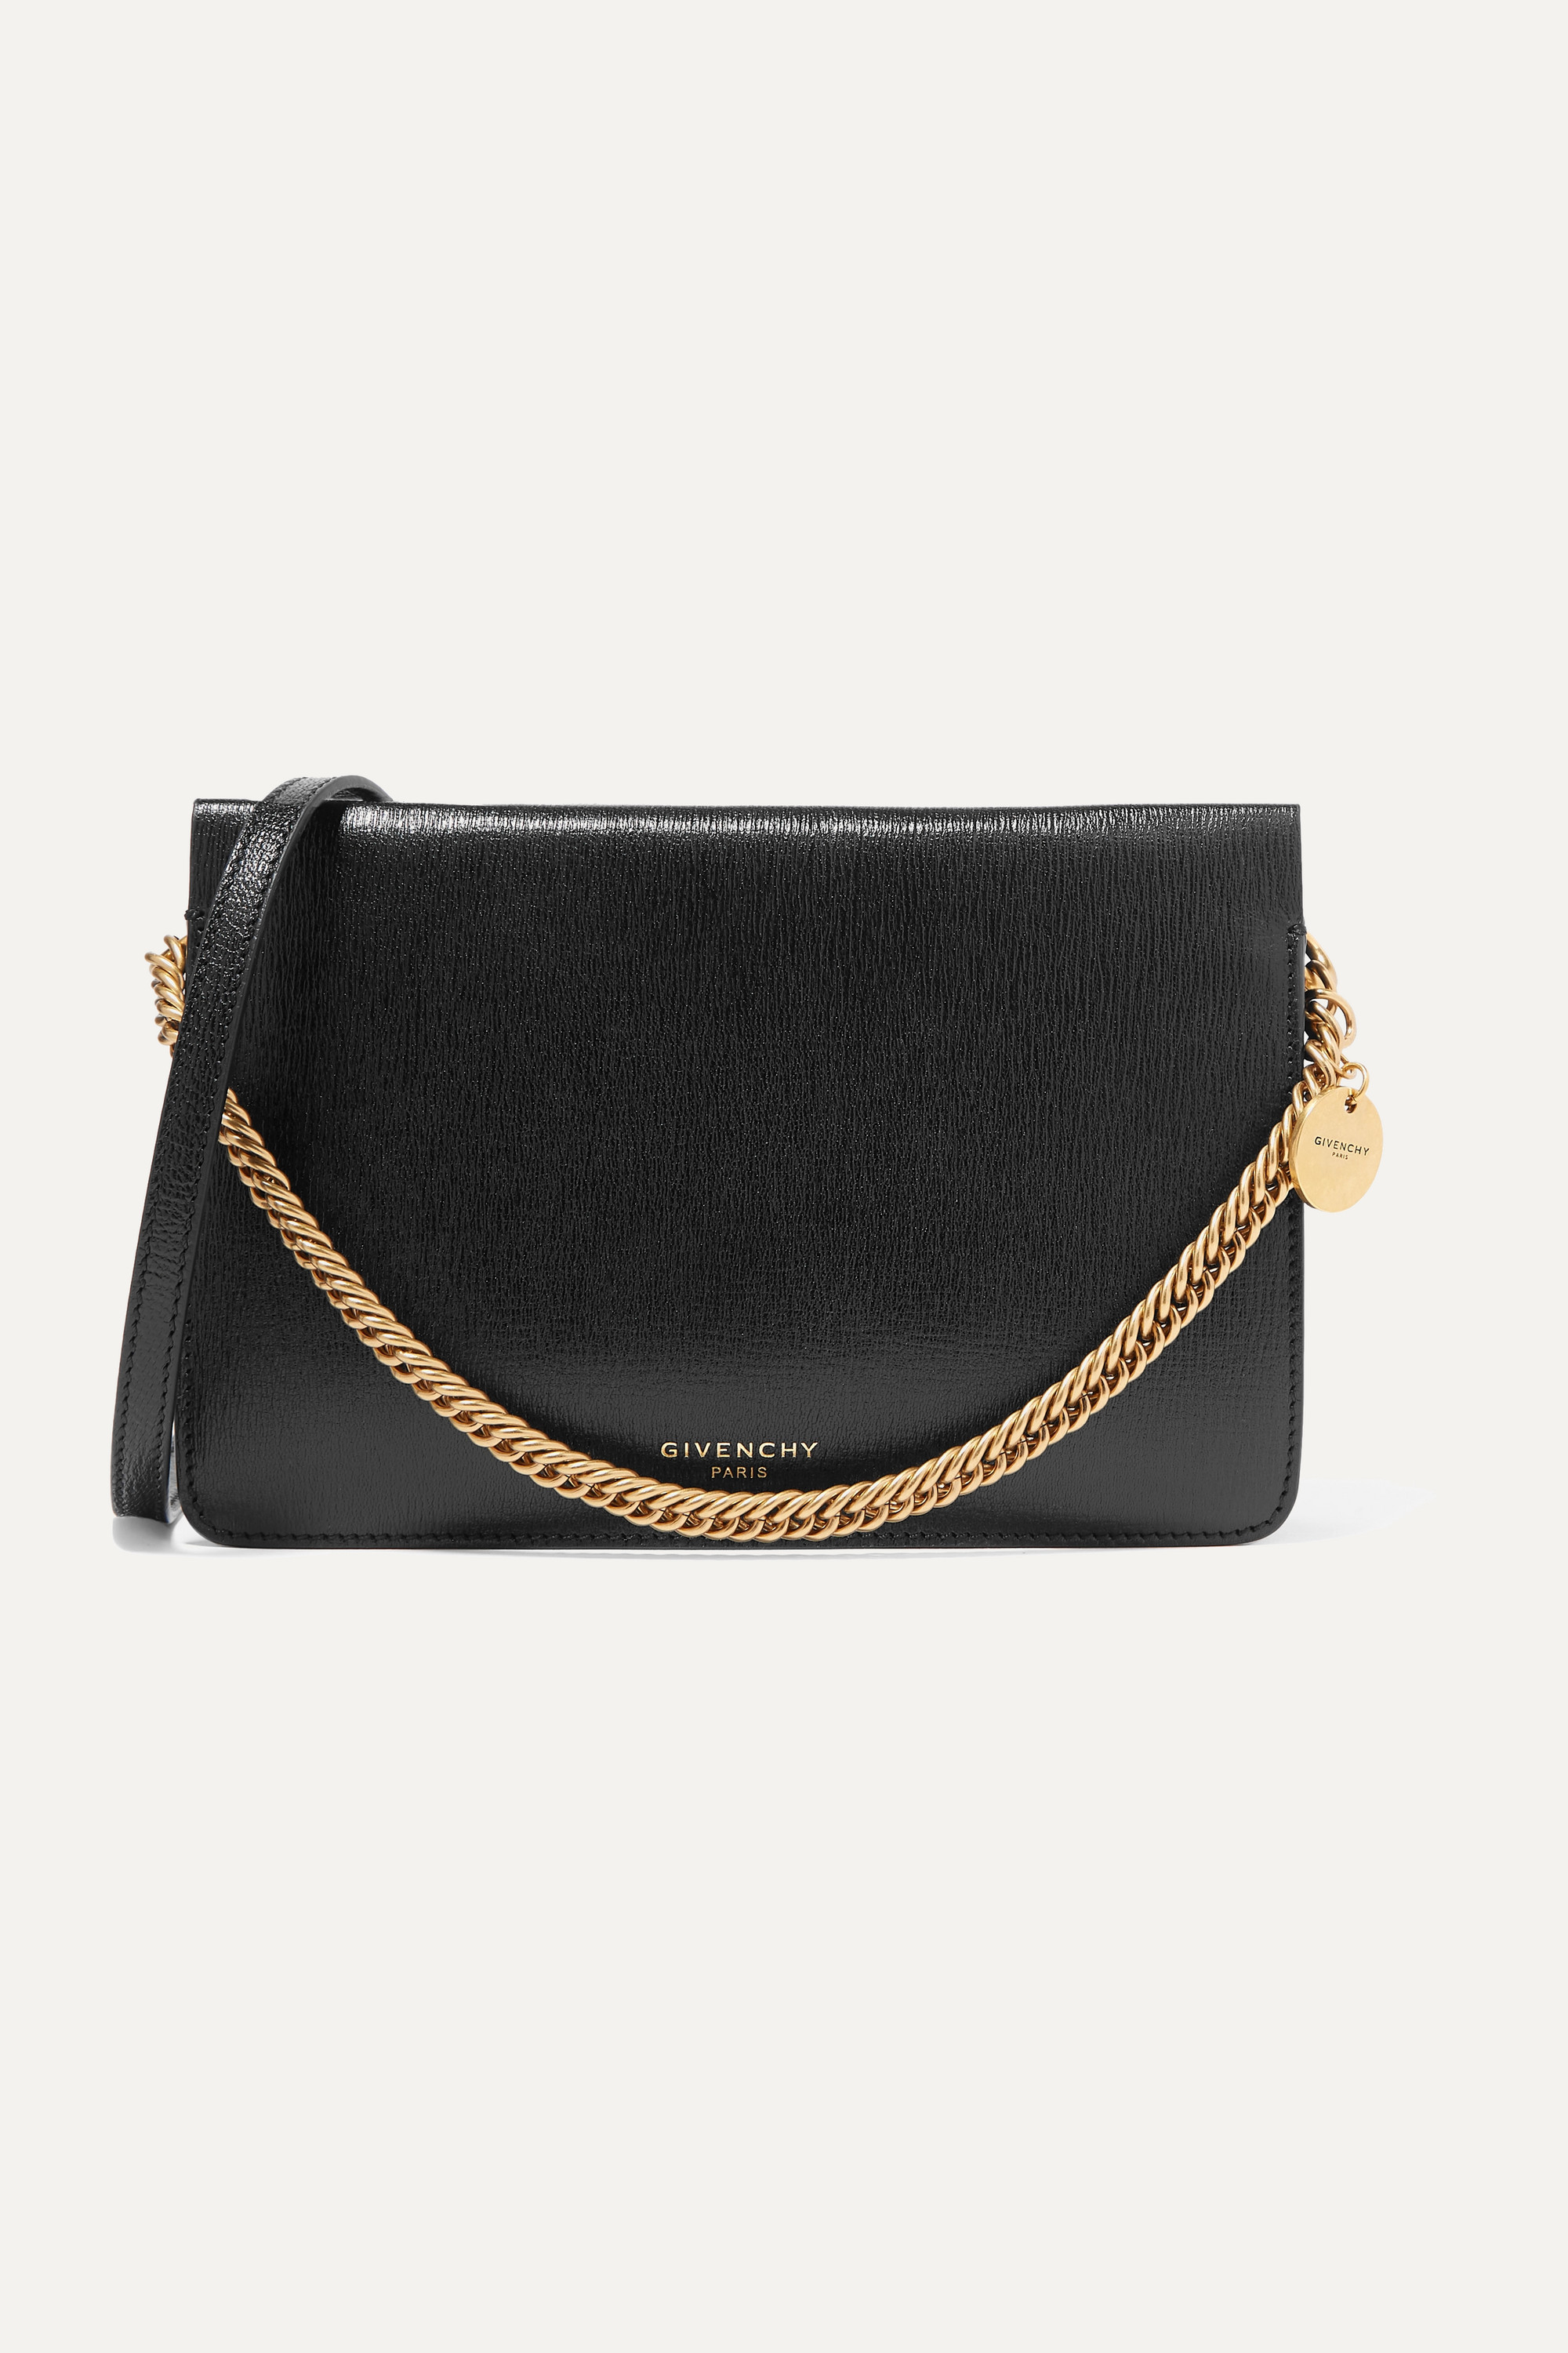 GIVENCHY Cross 3 textured-leather and suede shoulder bag